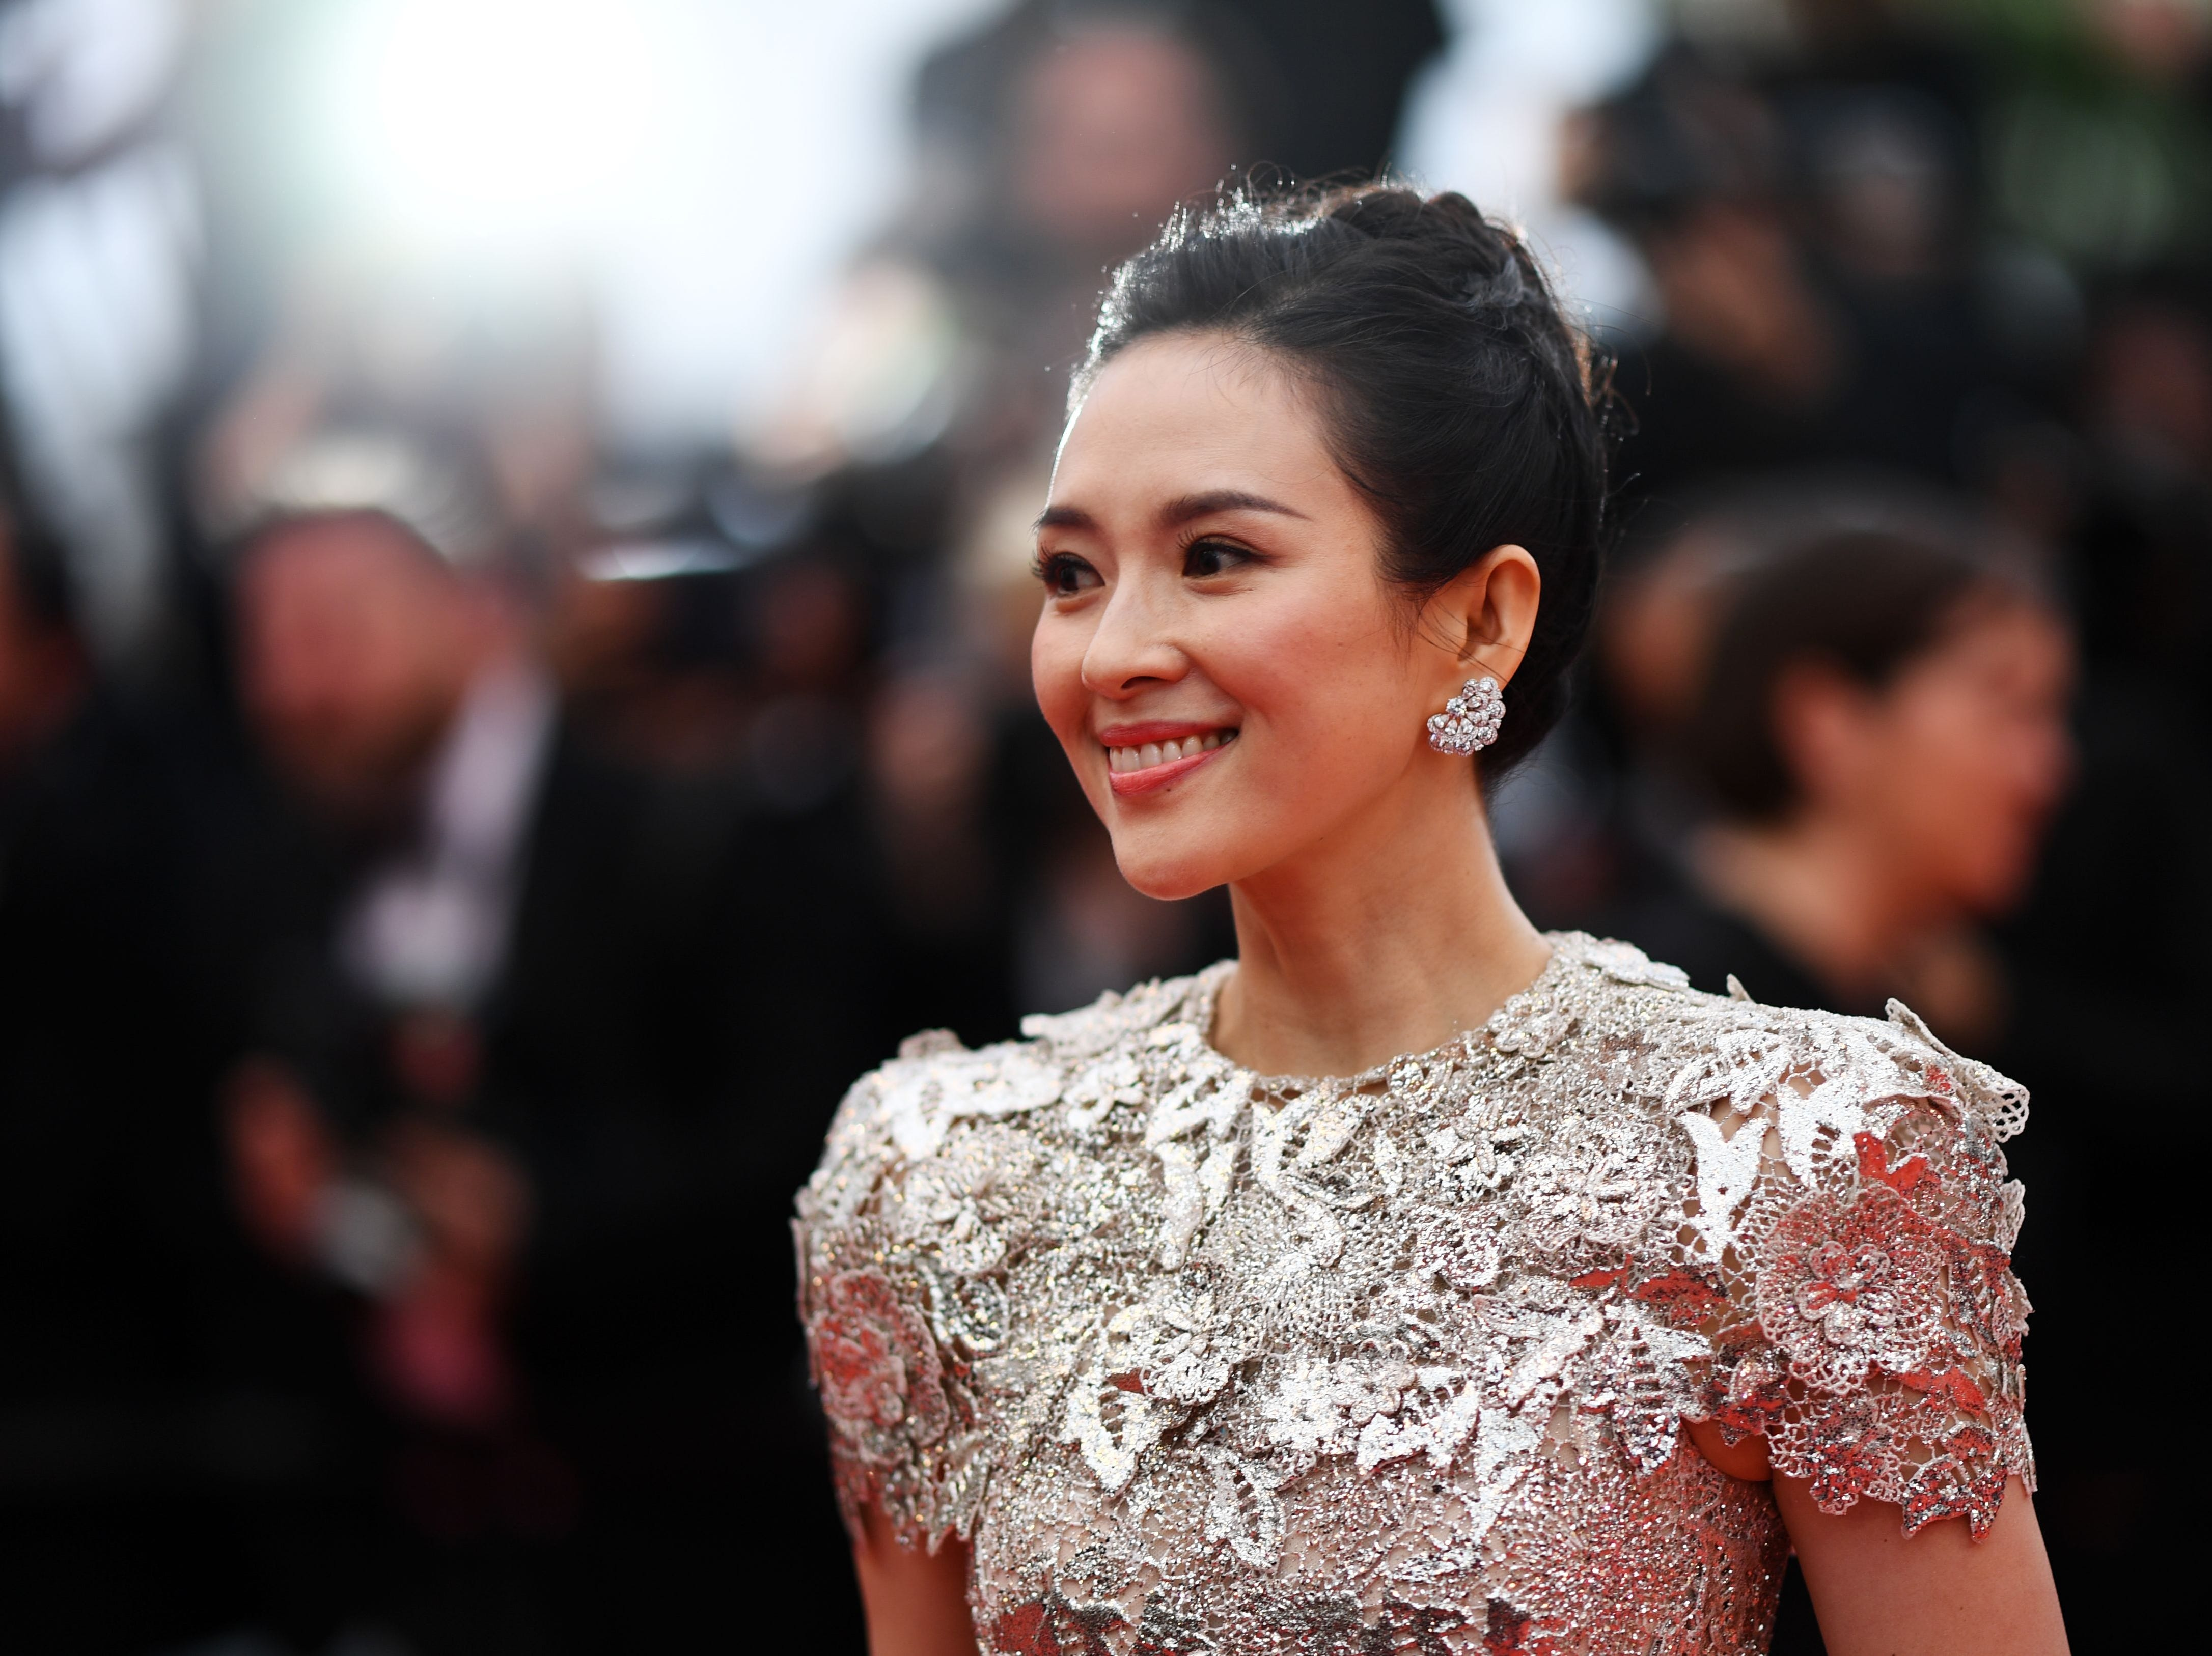 """Zhang Ziyi arrives for the screening of the film """"La Belle Epoque"""" at the 72nd edition of the Cannes Film Festival in Cannes, France."""